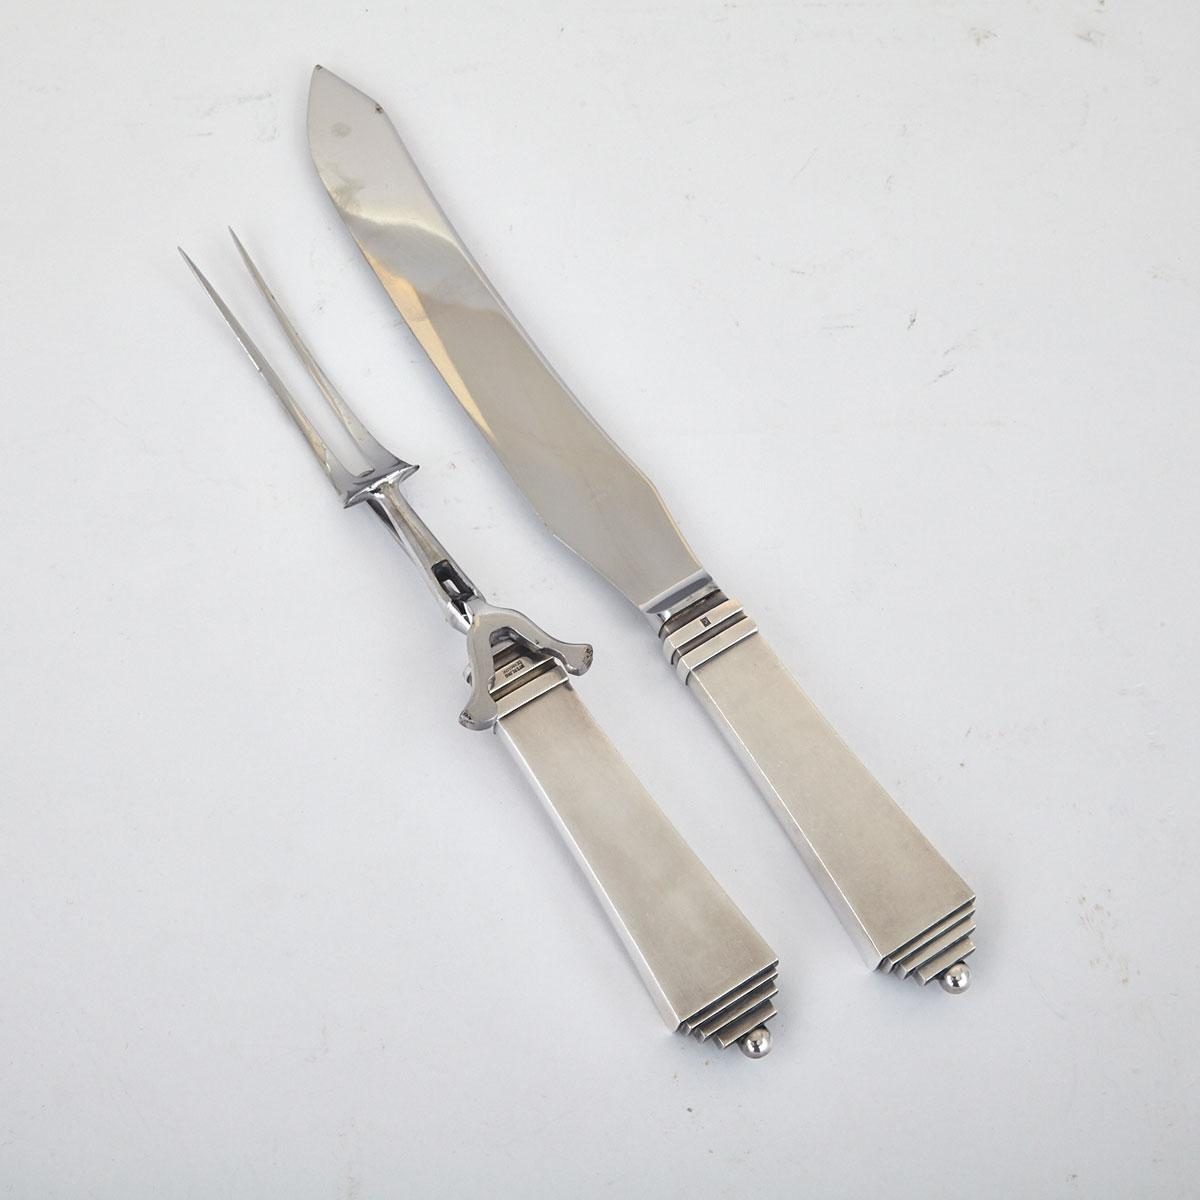 Danish Silver 'Pyramid' Pattern Carving Knife and Fork, Harald Nielsen for Georg Jensen, Copenhagen, c.1933-44